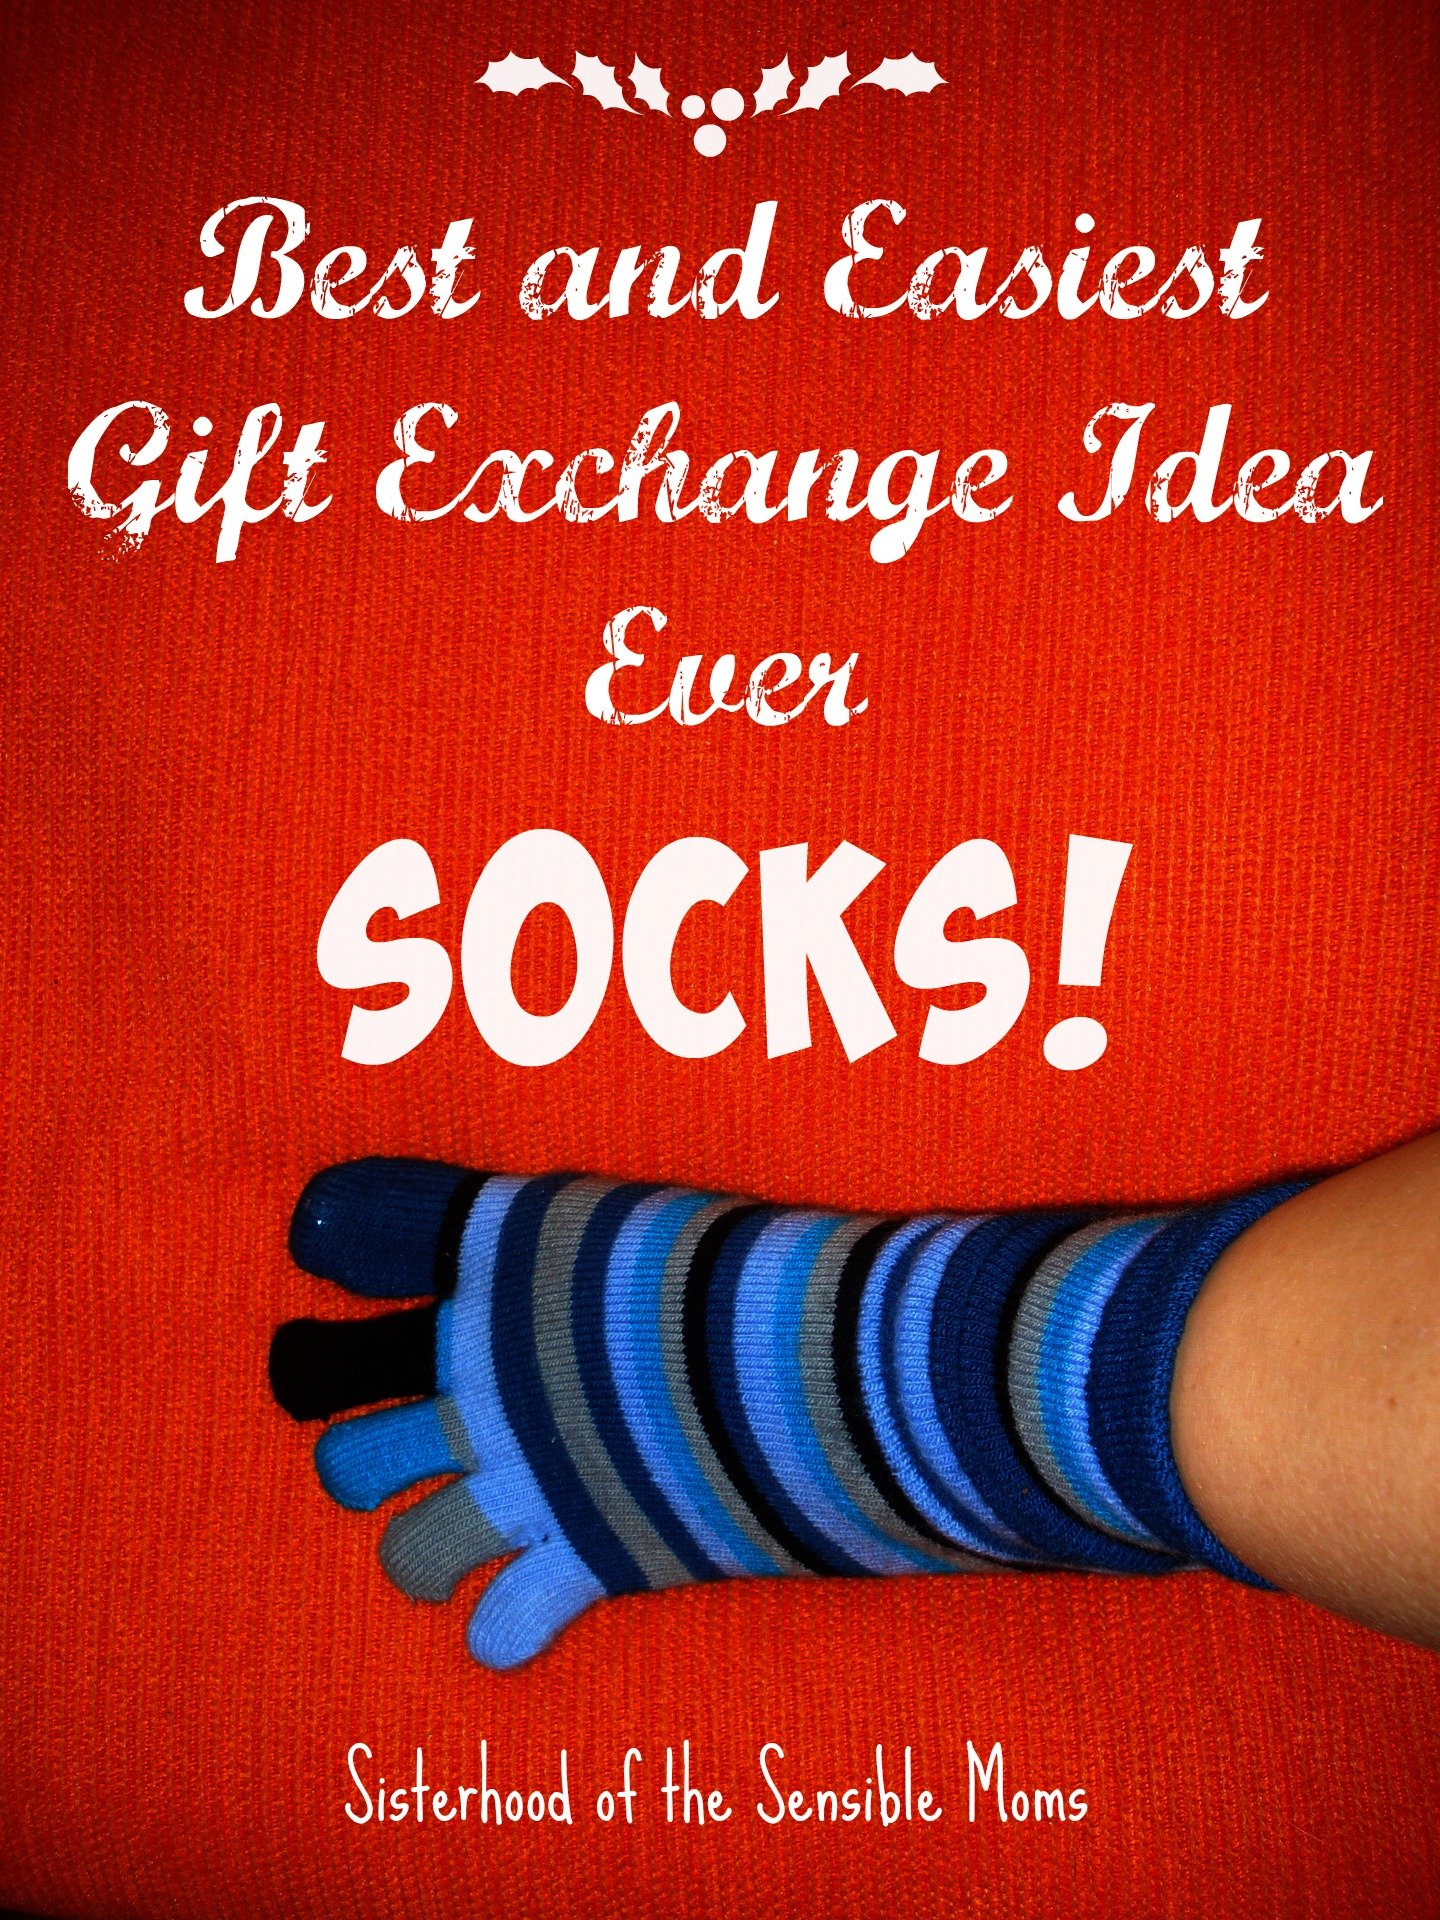 Socks are the Best and Easiest Gift Exchange Idea Ever! There are so many options, sizing isn't stressful, they can be so thoughtfully personal, you can find FANTASTIC ones for under $10, Amazon is dripping with them, and they don't add to clutter. | Christmas | Sisterhood of the Sensible Moms